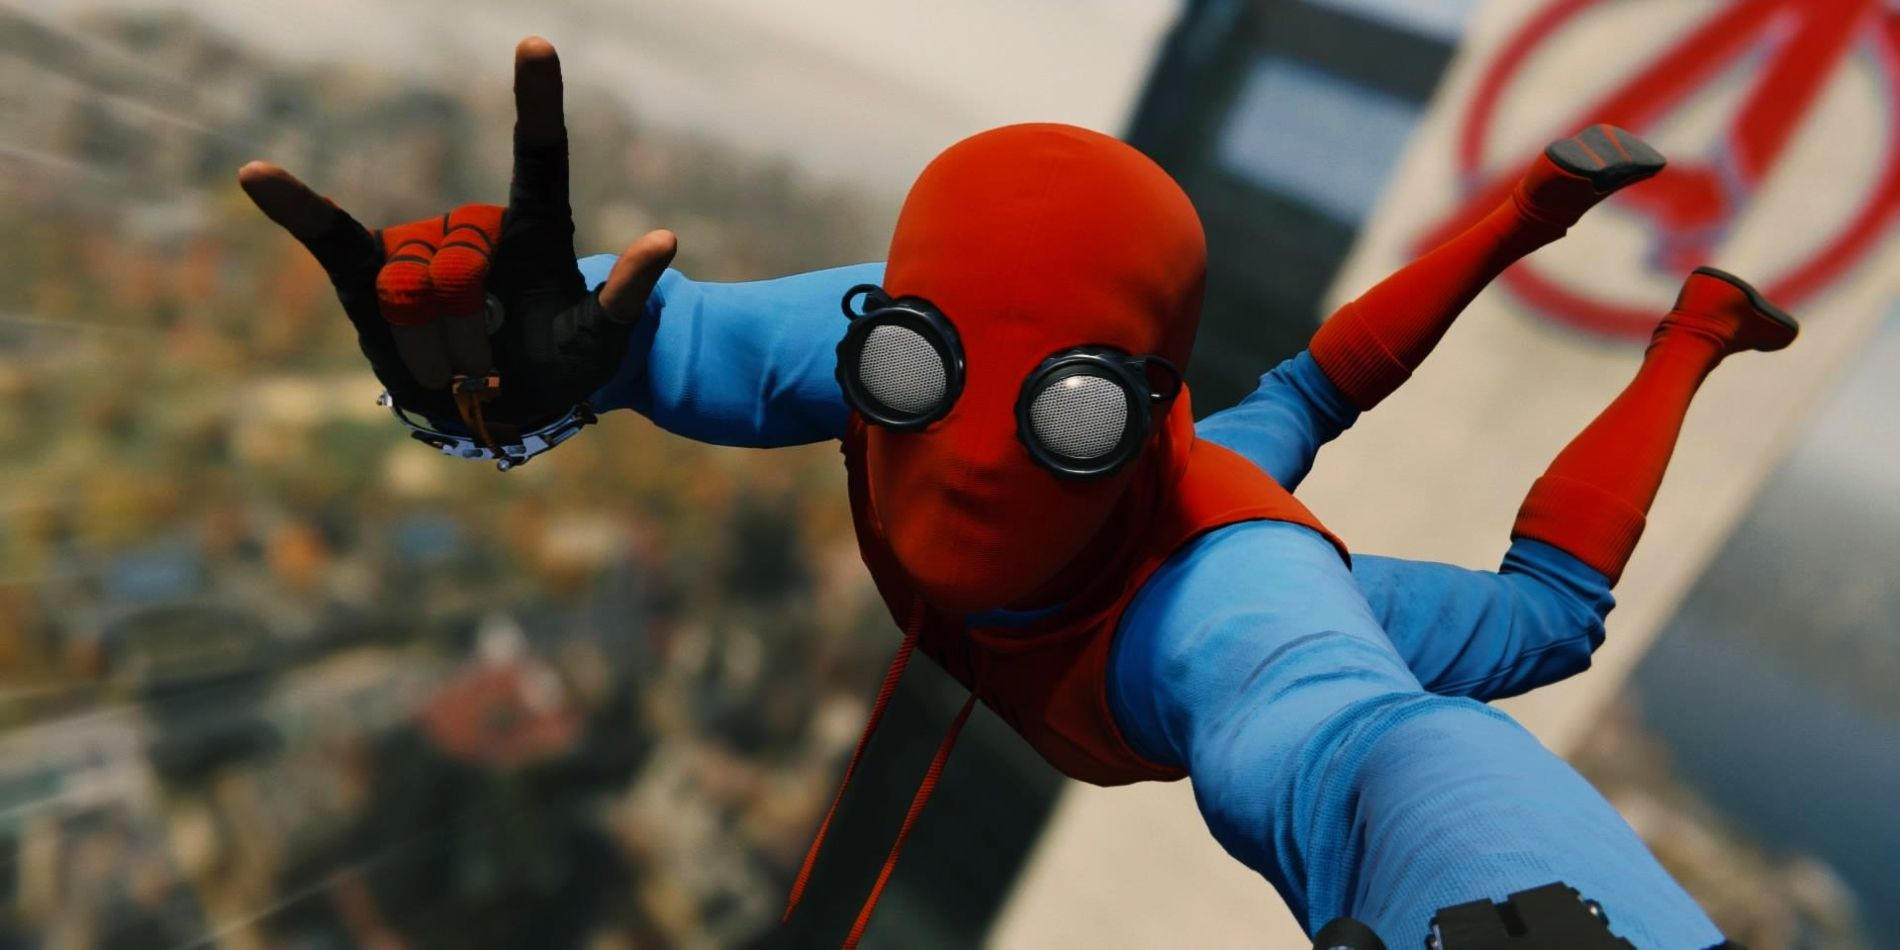 Spider-Man PS4: How To Unlock Spider-Man Homecoming Suit